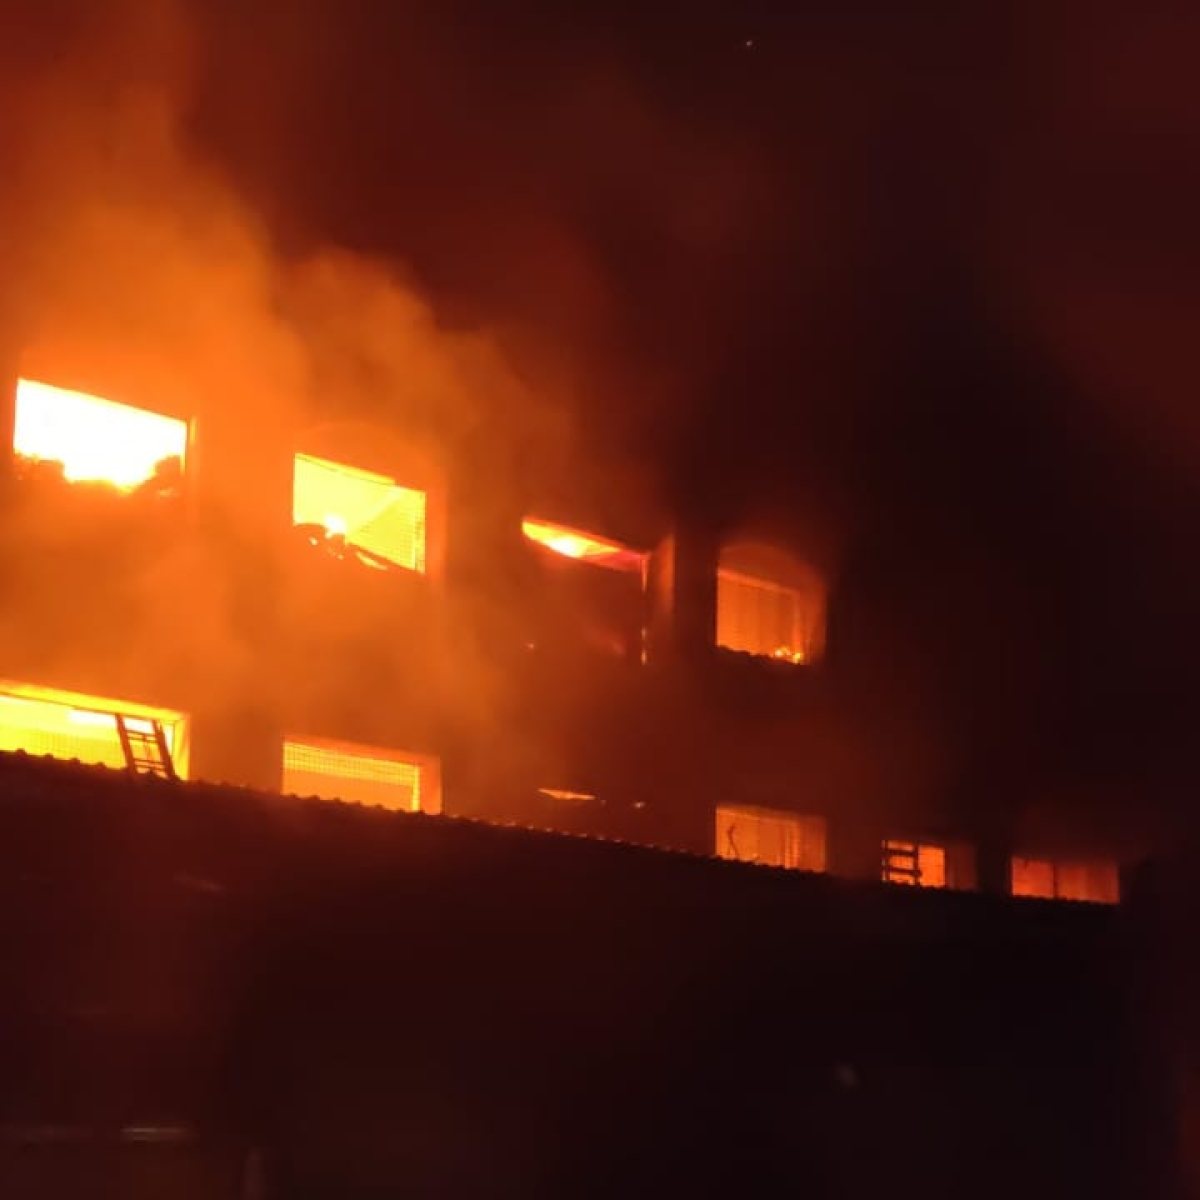 Maharashtra: Fire breaks out in Bhiwandi godown; no casualties reported